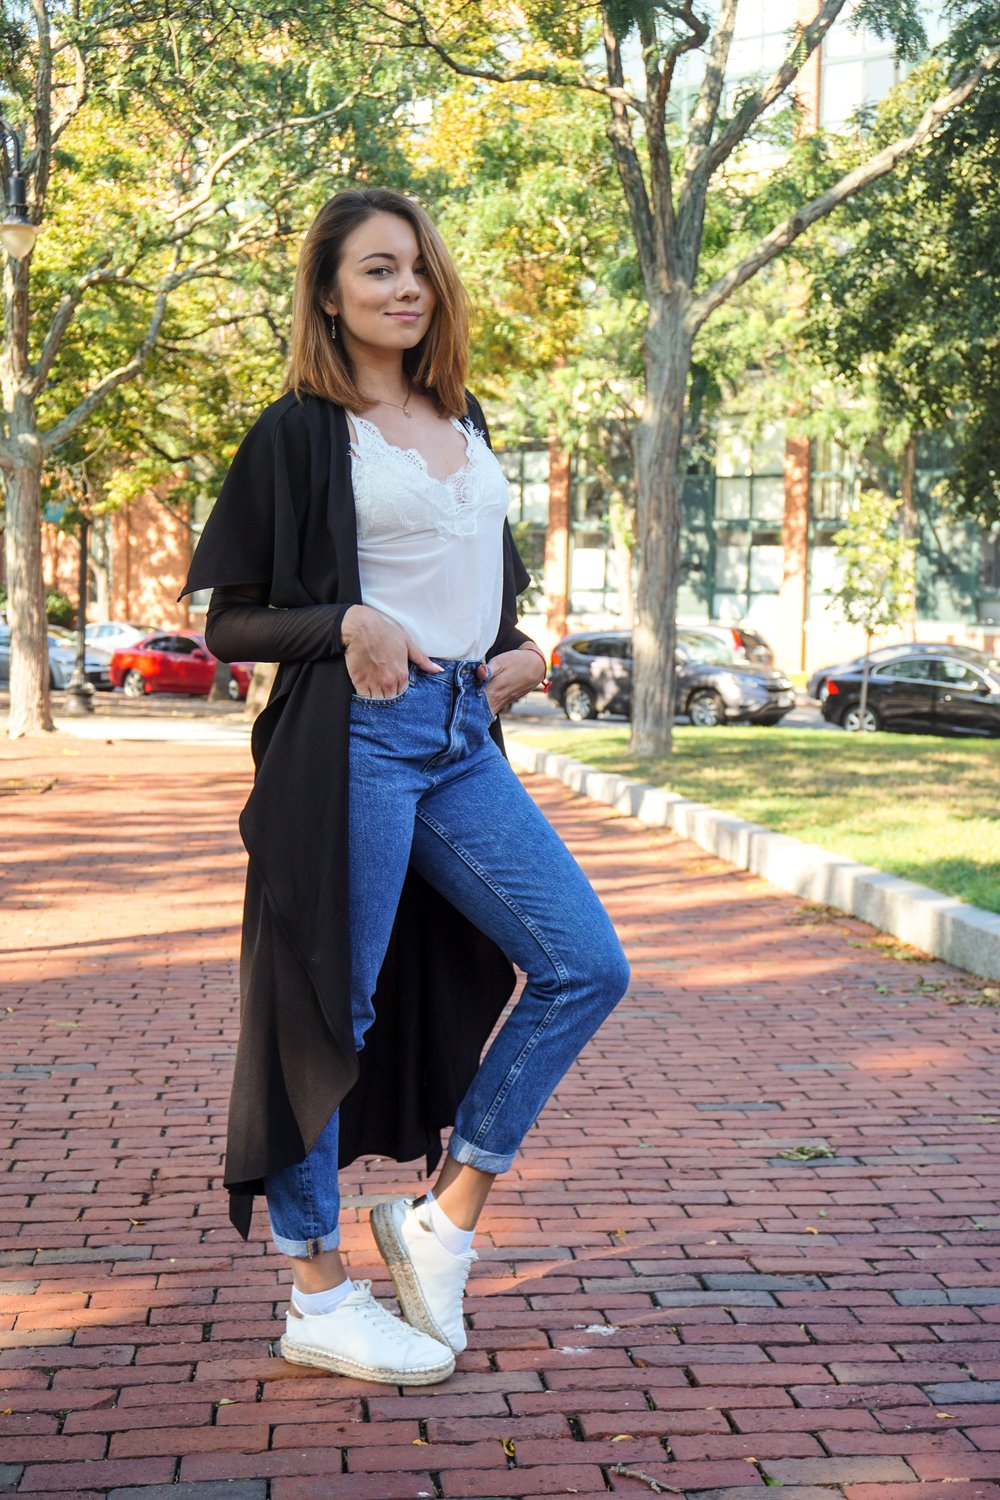 A Boston blogger wearing blue mom jeans, white top, white sneakers, and black long duster.